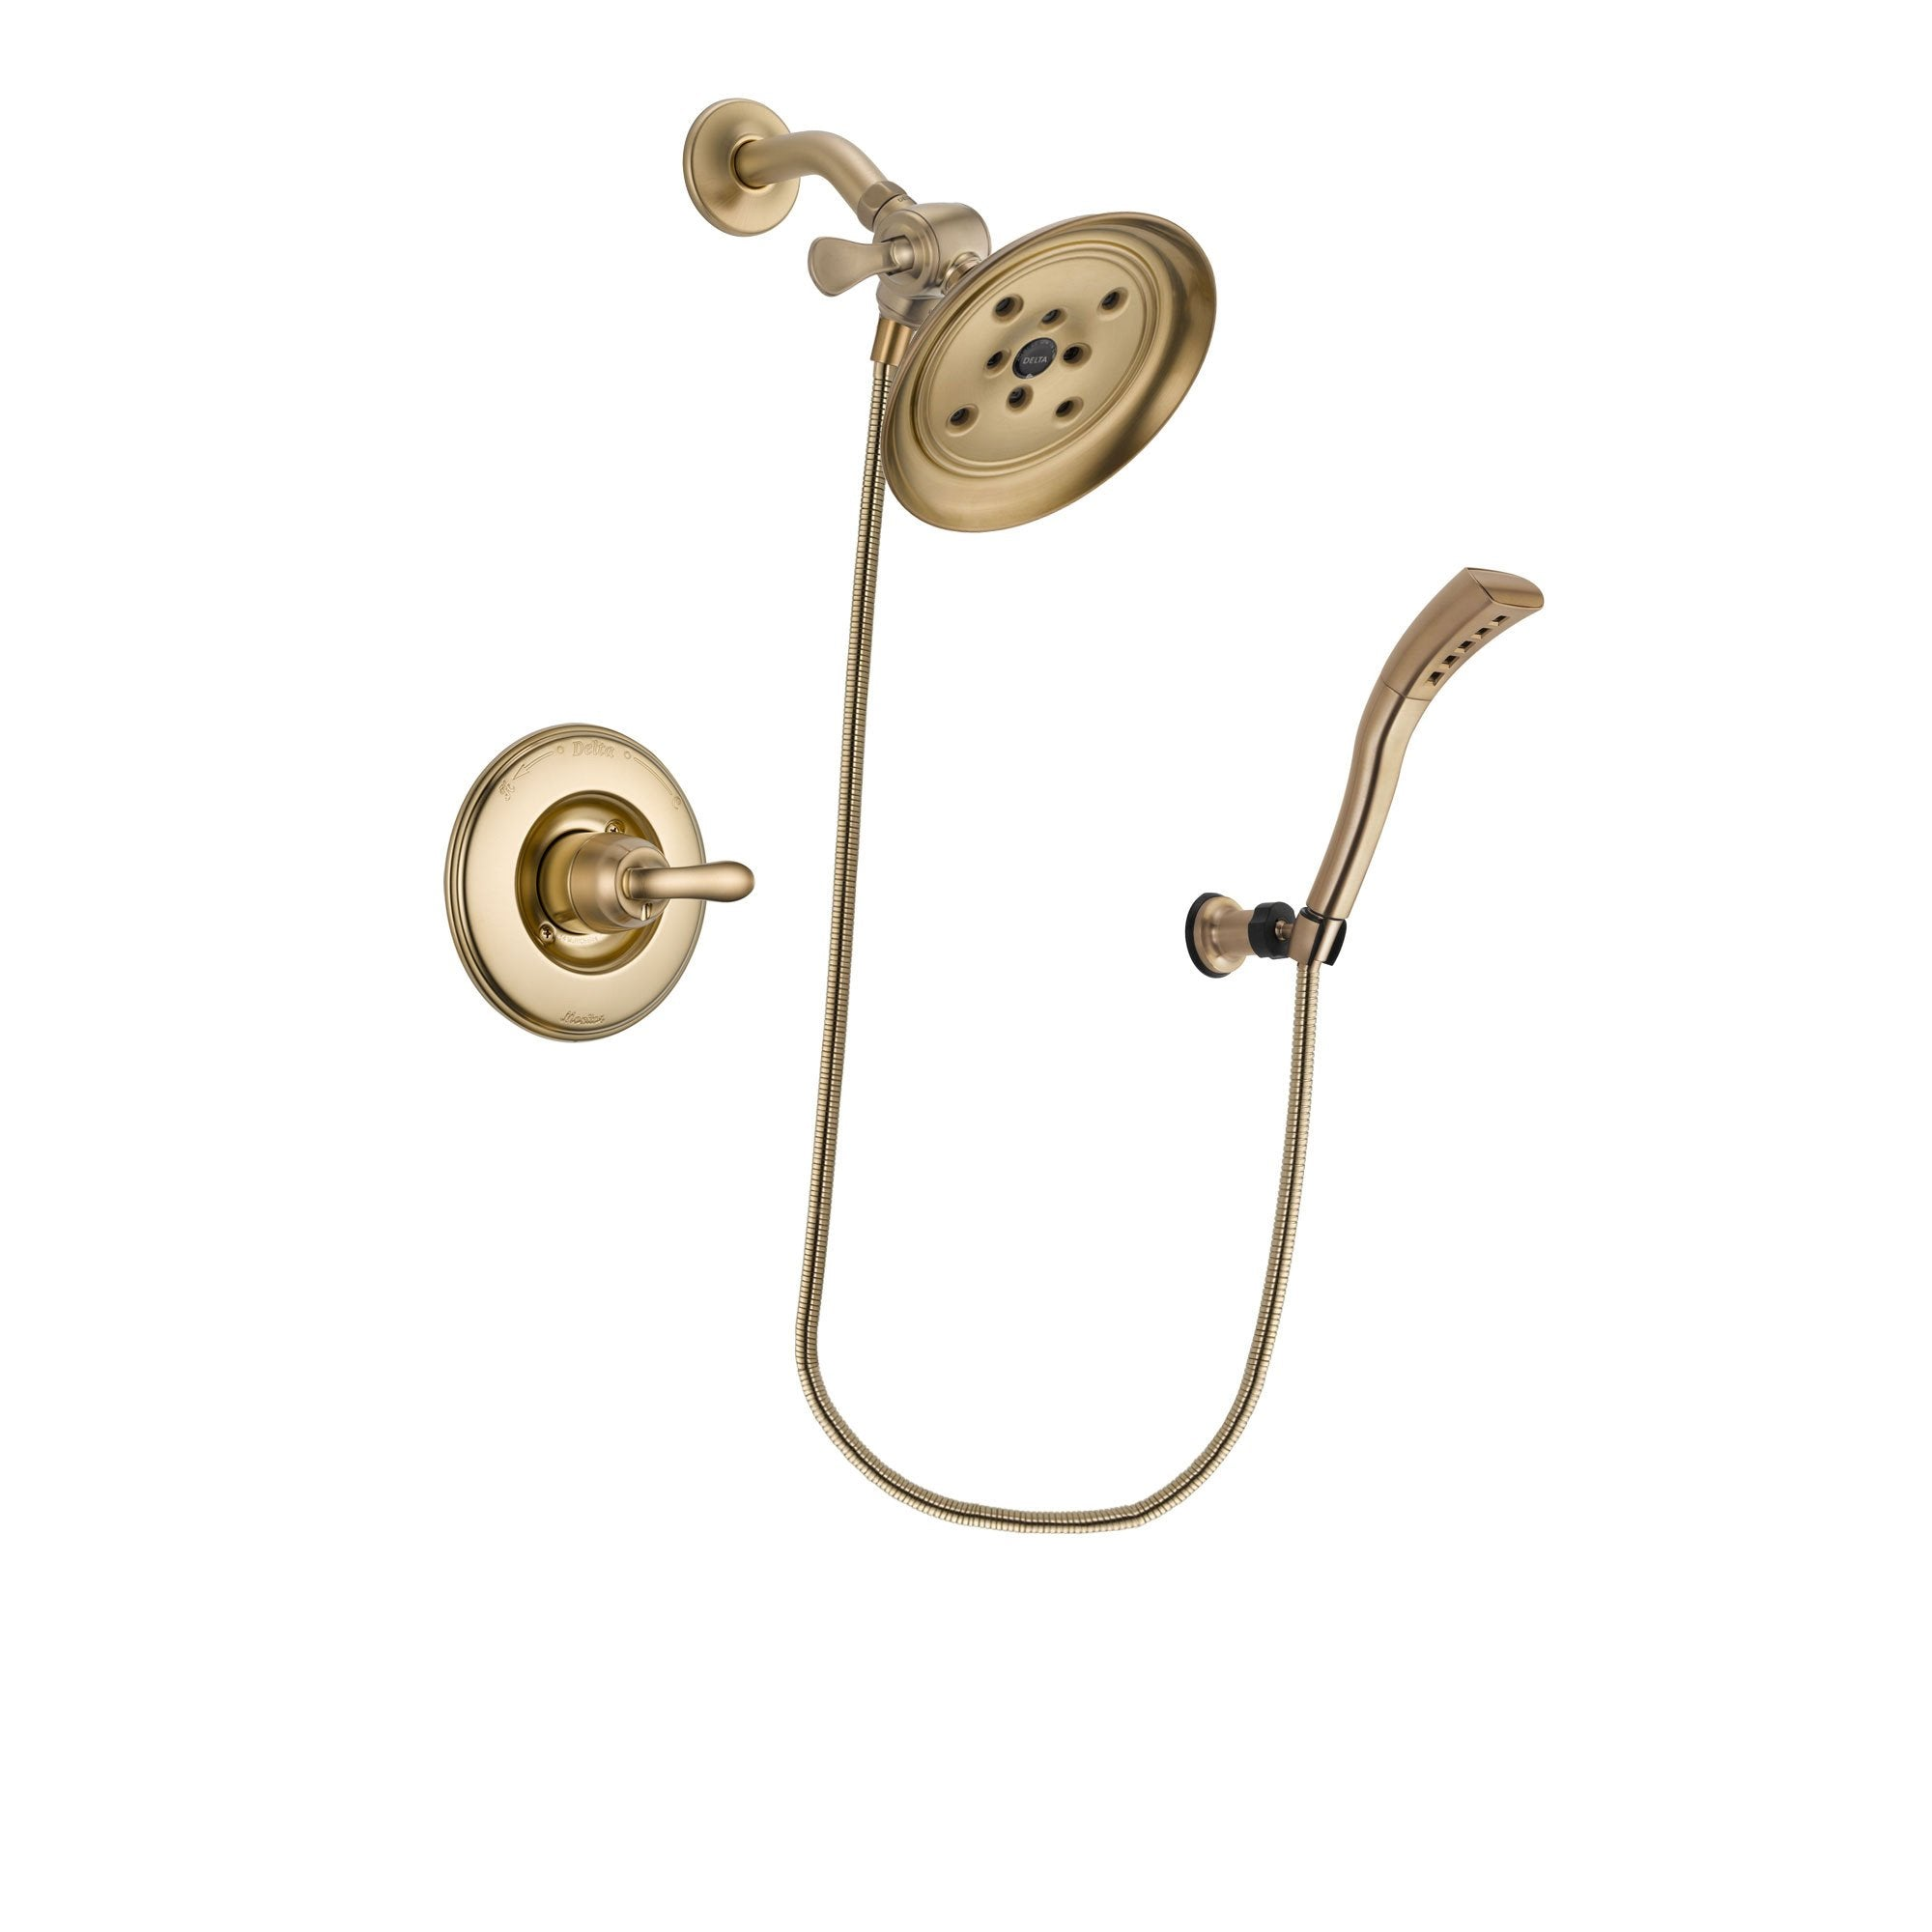 Delta Linden Champagne Bronze Finish Shower Faucet System Package with Large Rain Shower Head and Modern Wall Mount Personal Handheld Shower Spray Includes Rough-in Valve DSP3696V